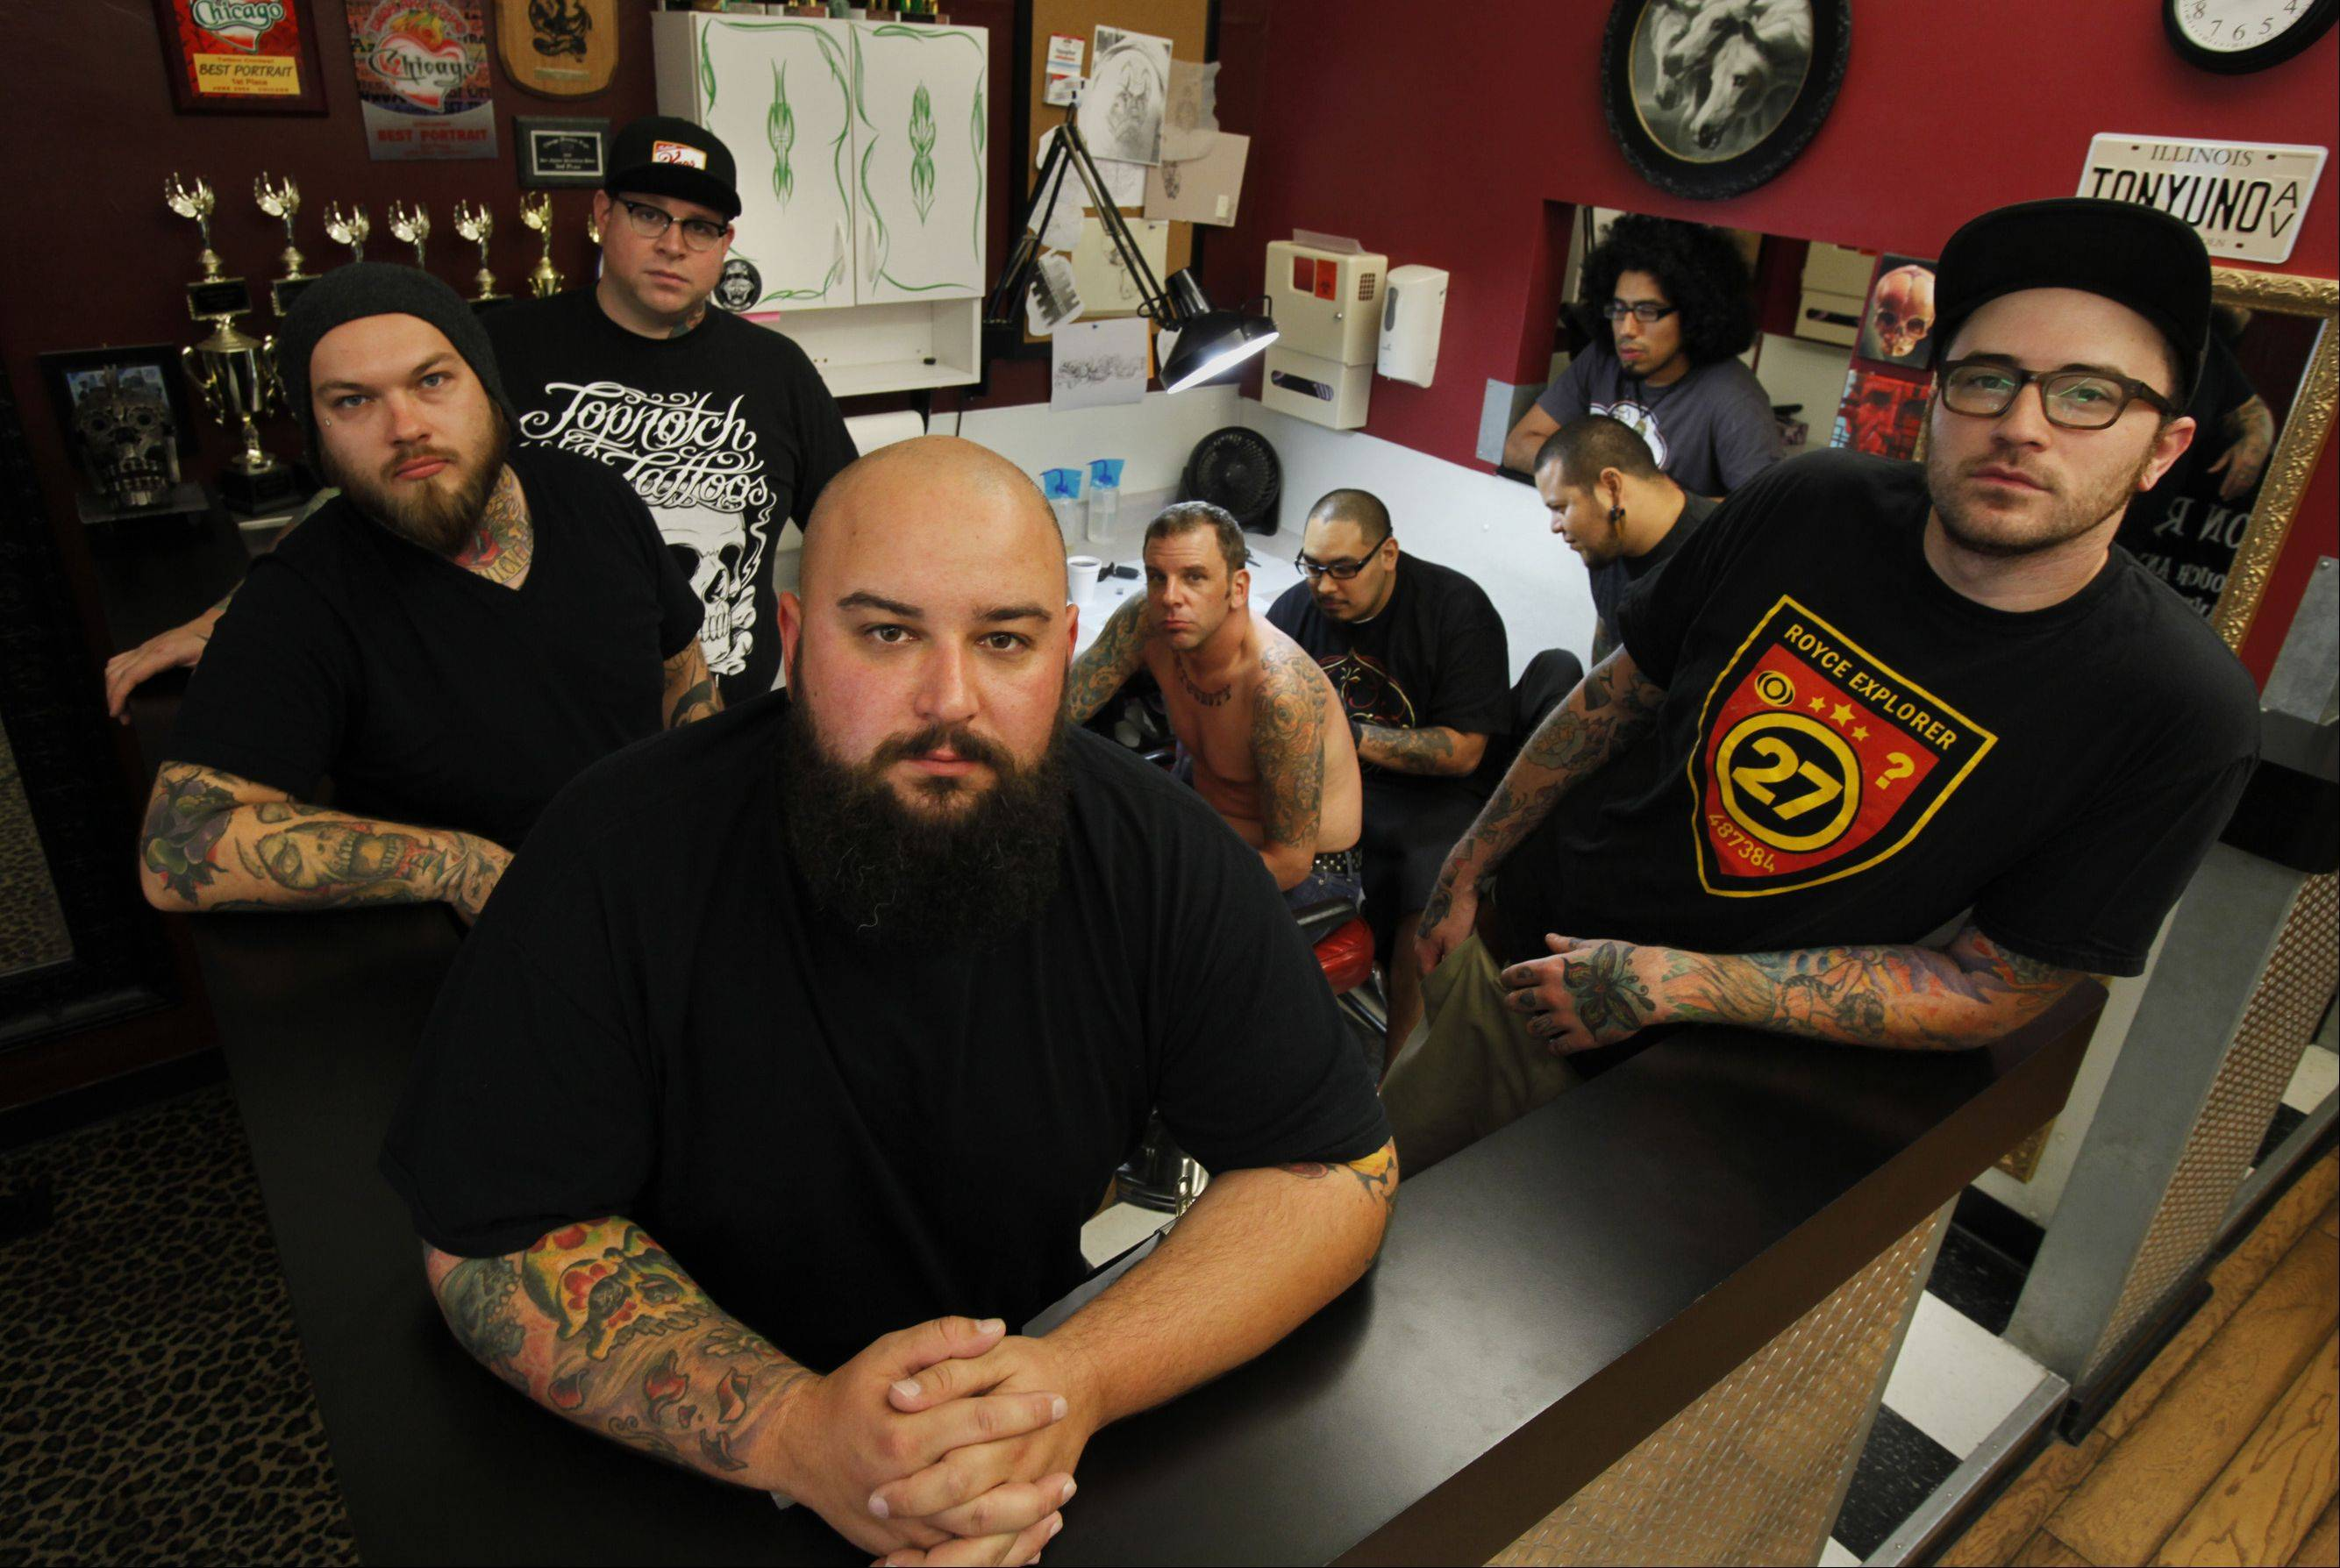 Two tattoo parlors planned in Elgin, one meets opposition